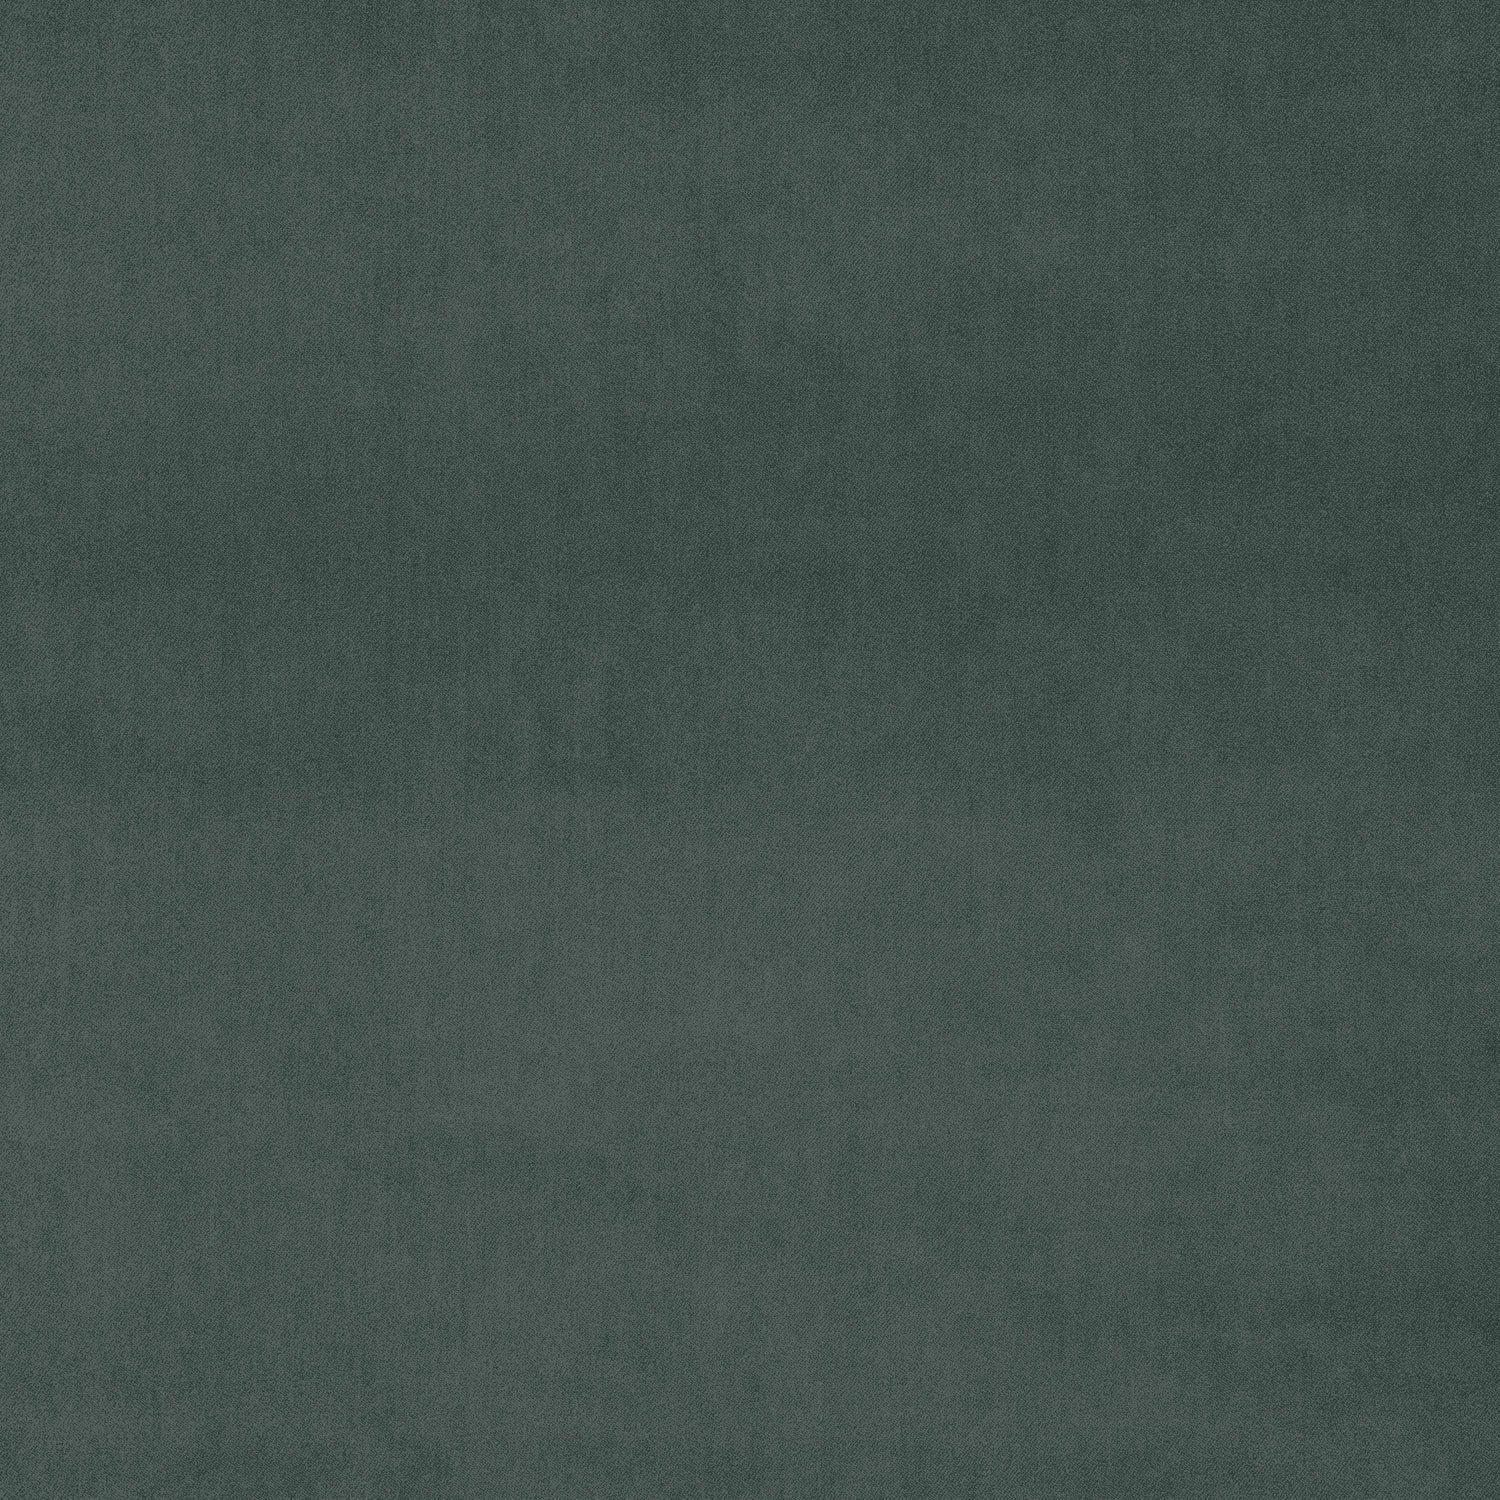 Luxury plain blue-grey velvet fabric for curtains and upholstery with a stain resistant finish